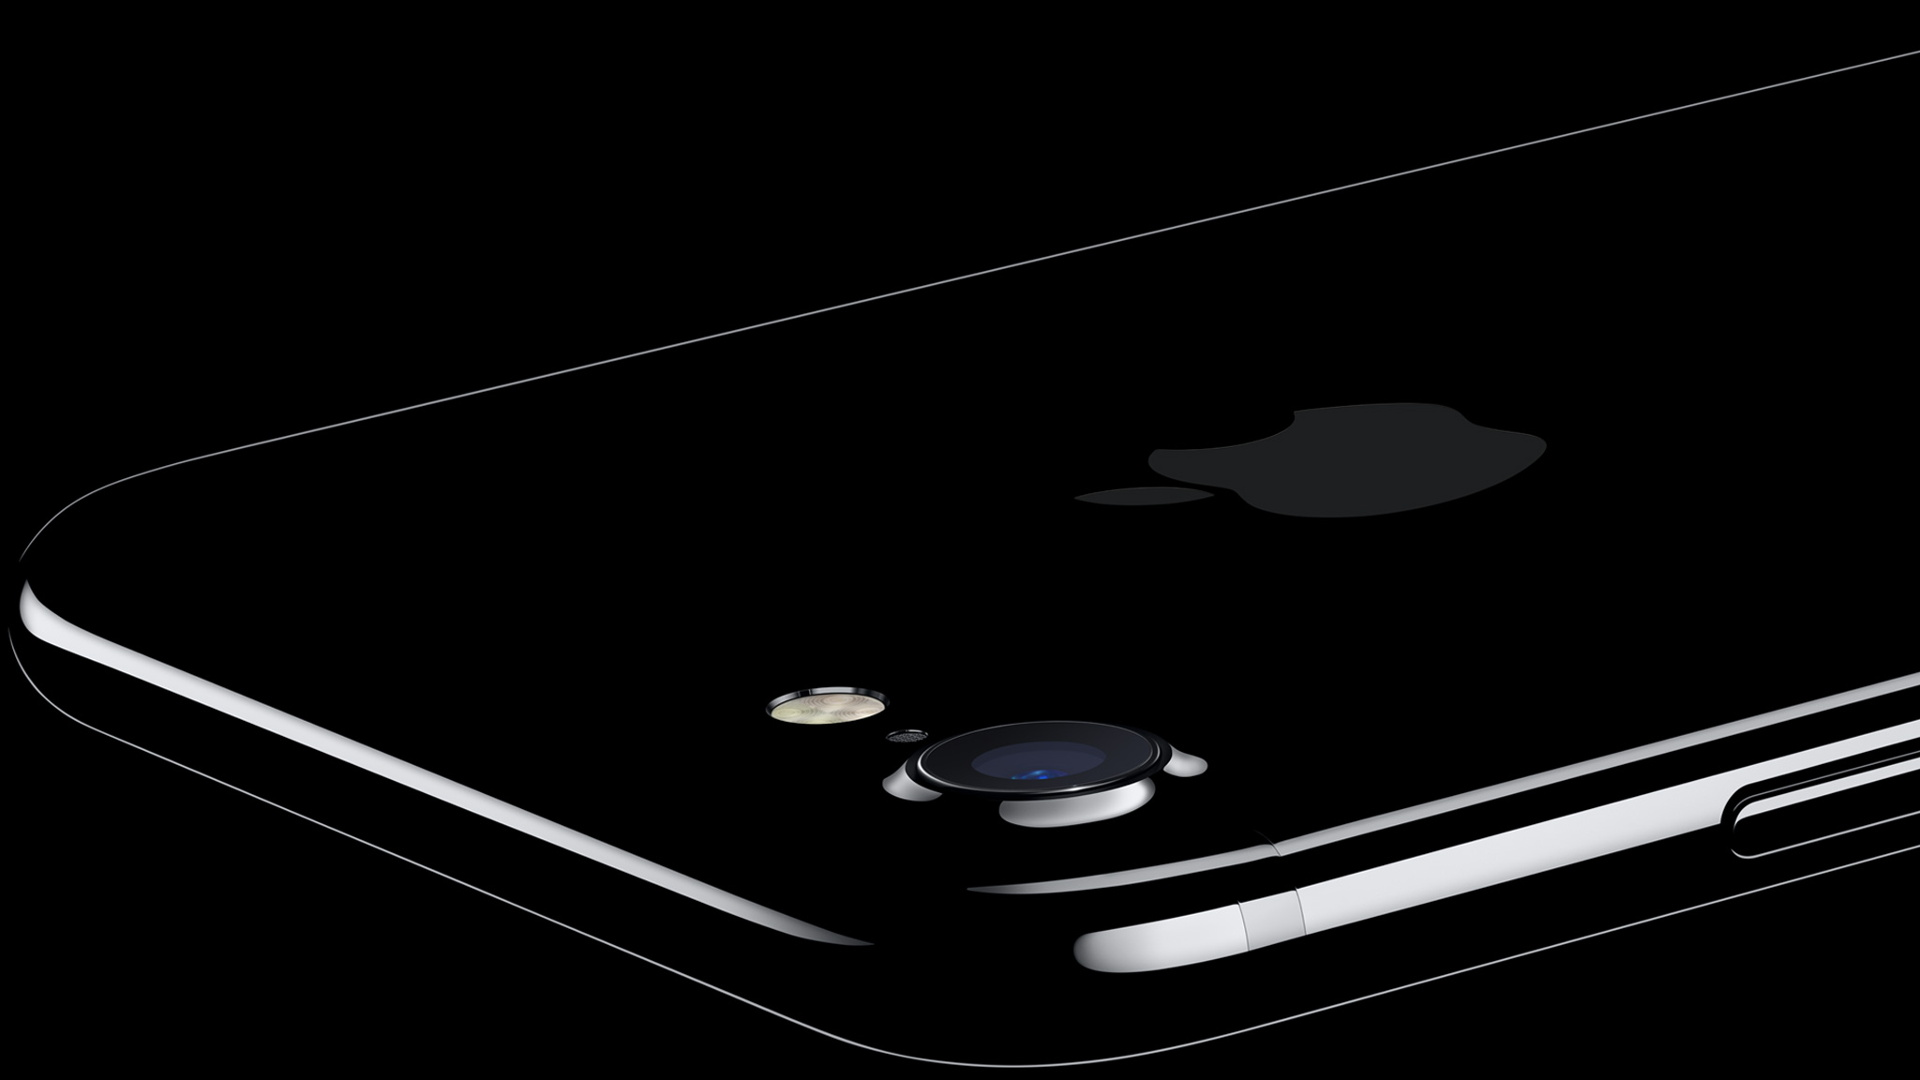 IPhone 7 Jetblack Wallpapers